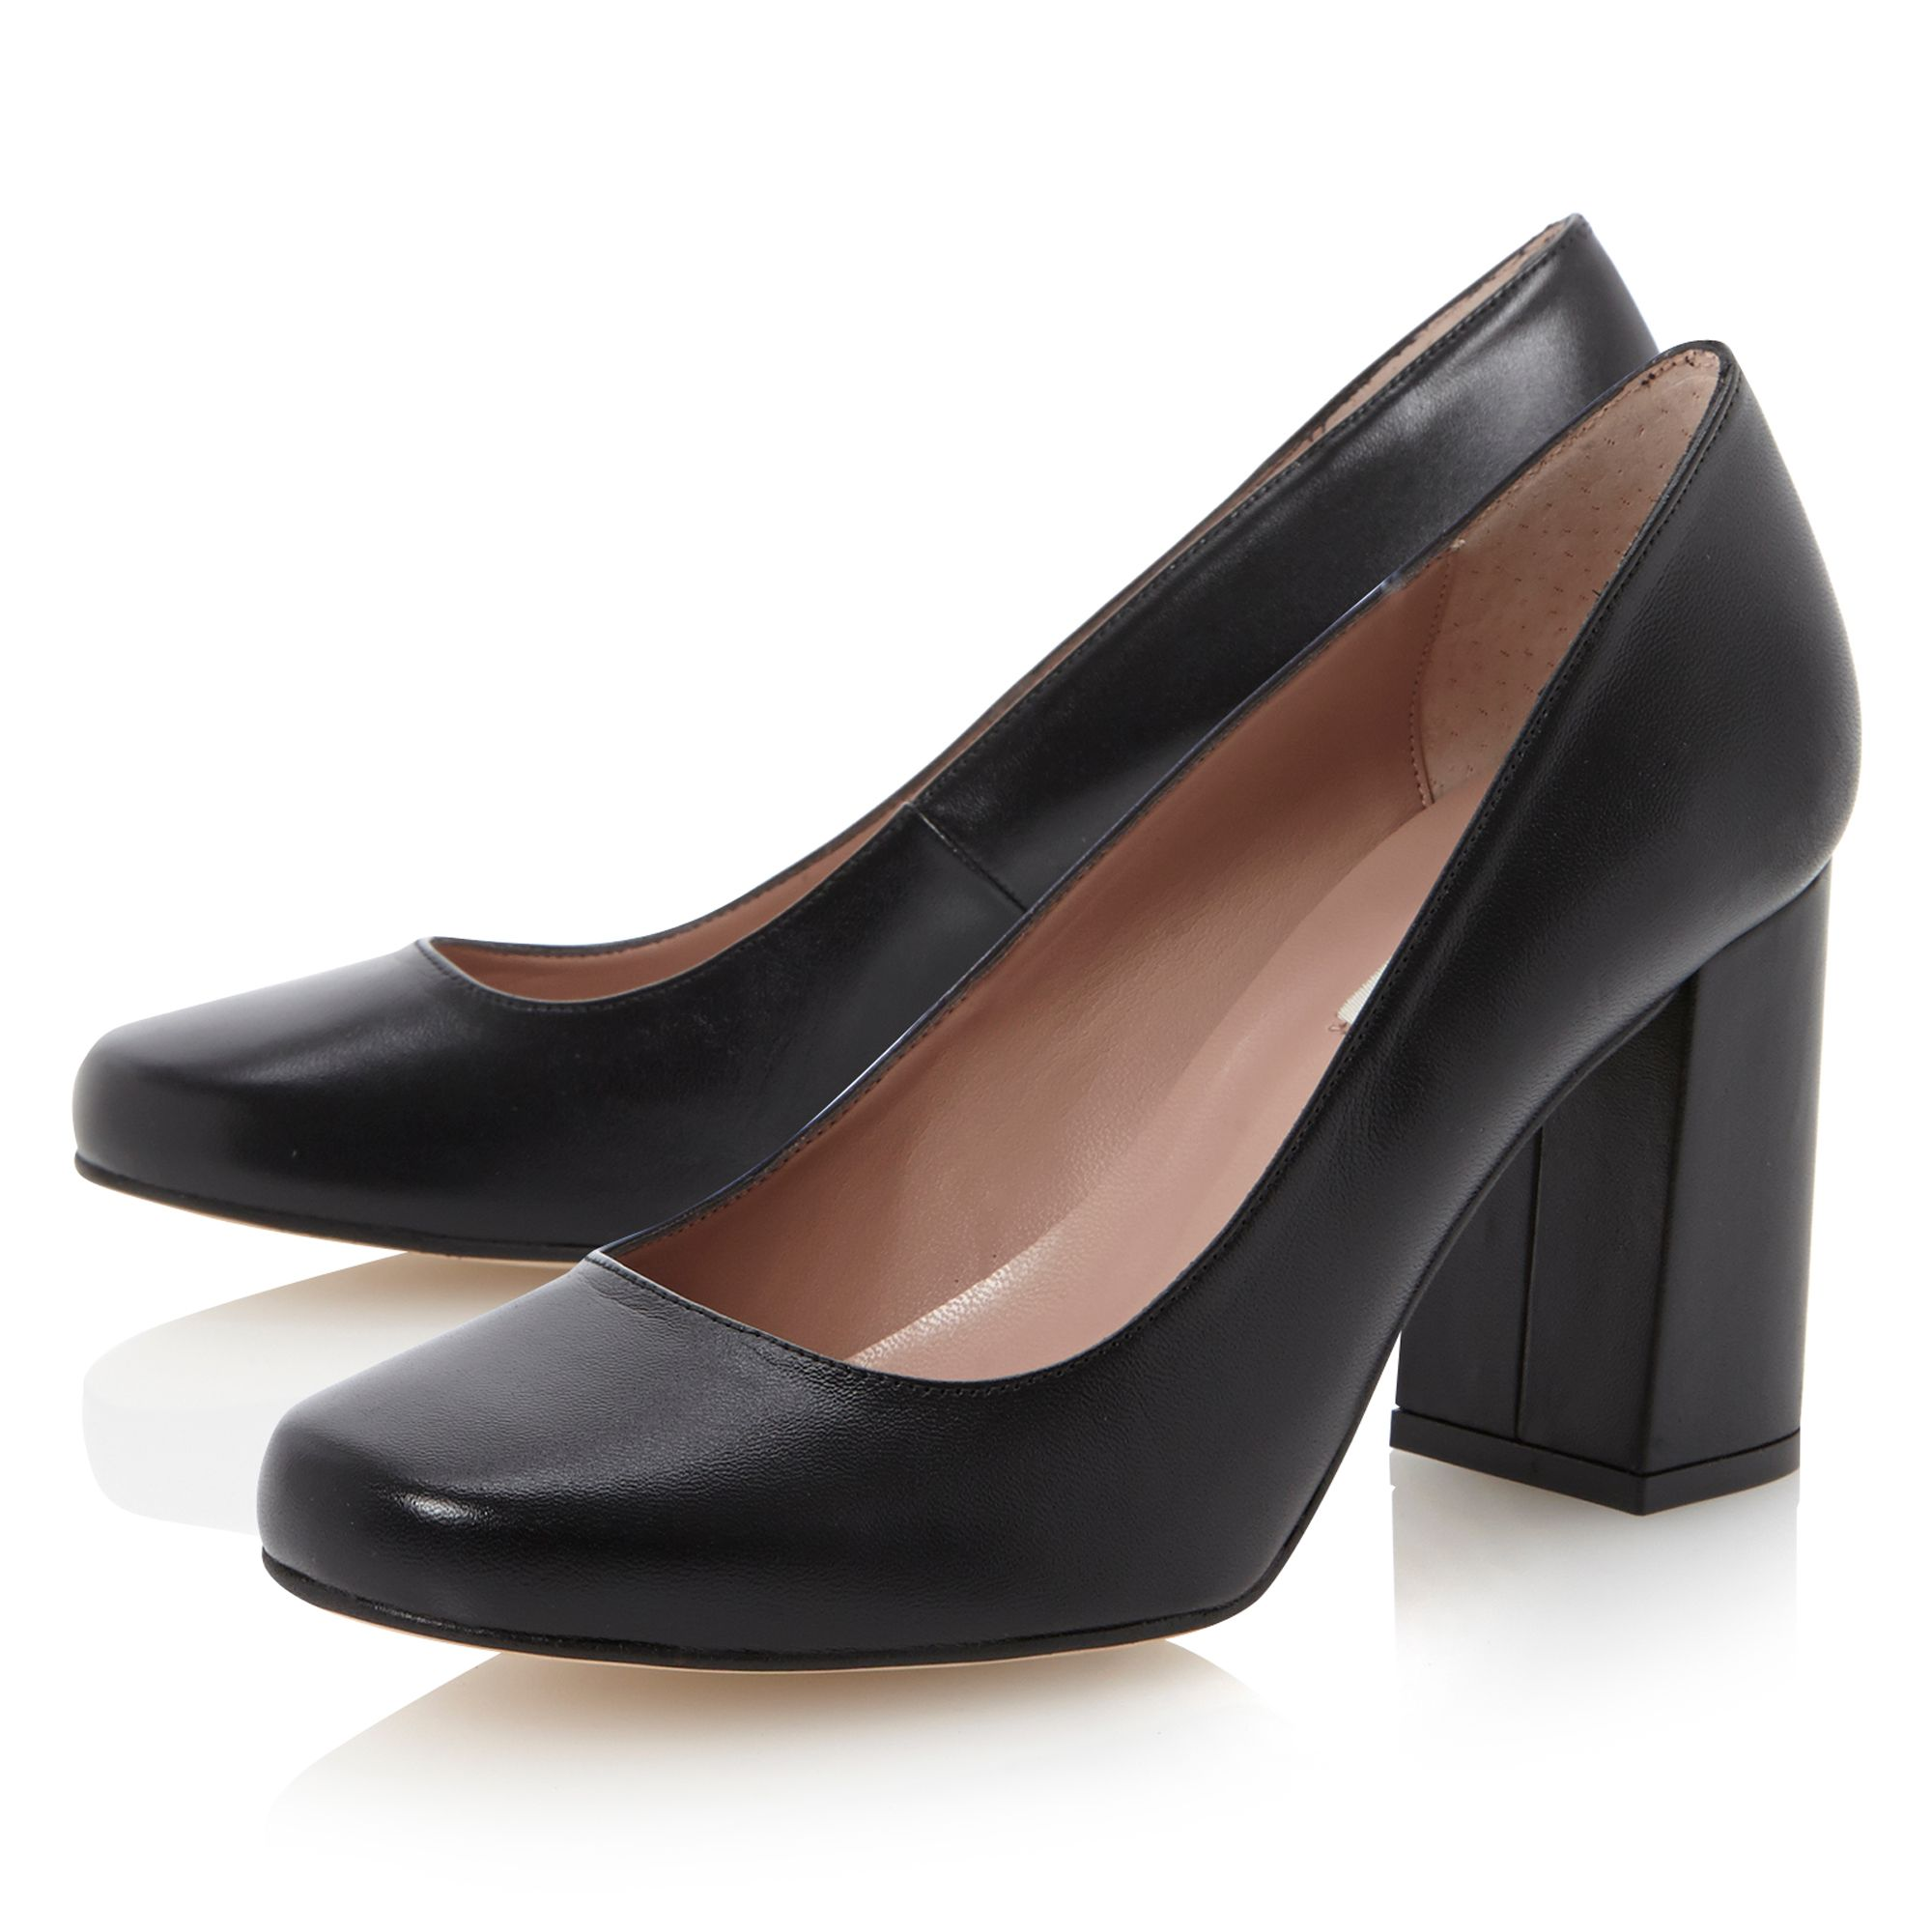 4, results for black block heel shoes size 7 Save black block heel shoes size 7 to get e-mail alerts and updates on your eBay Feed. Unfollow black block heel shoes .